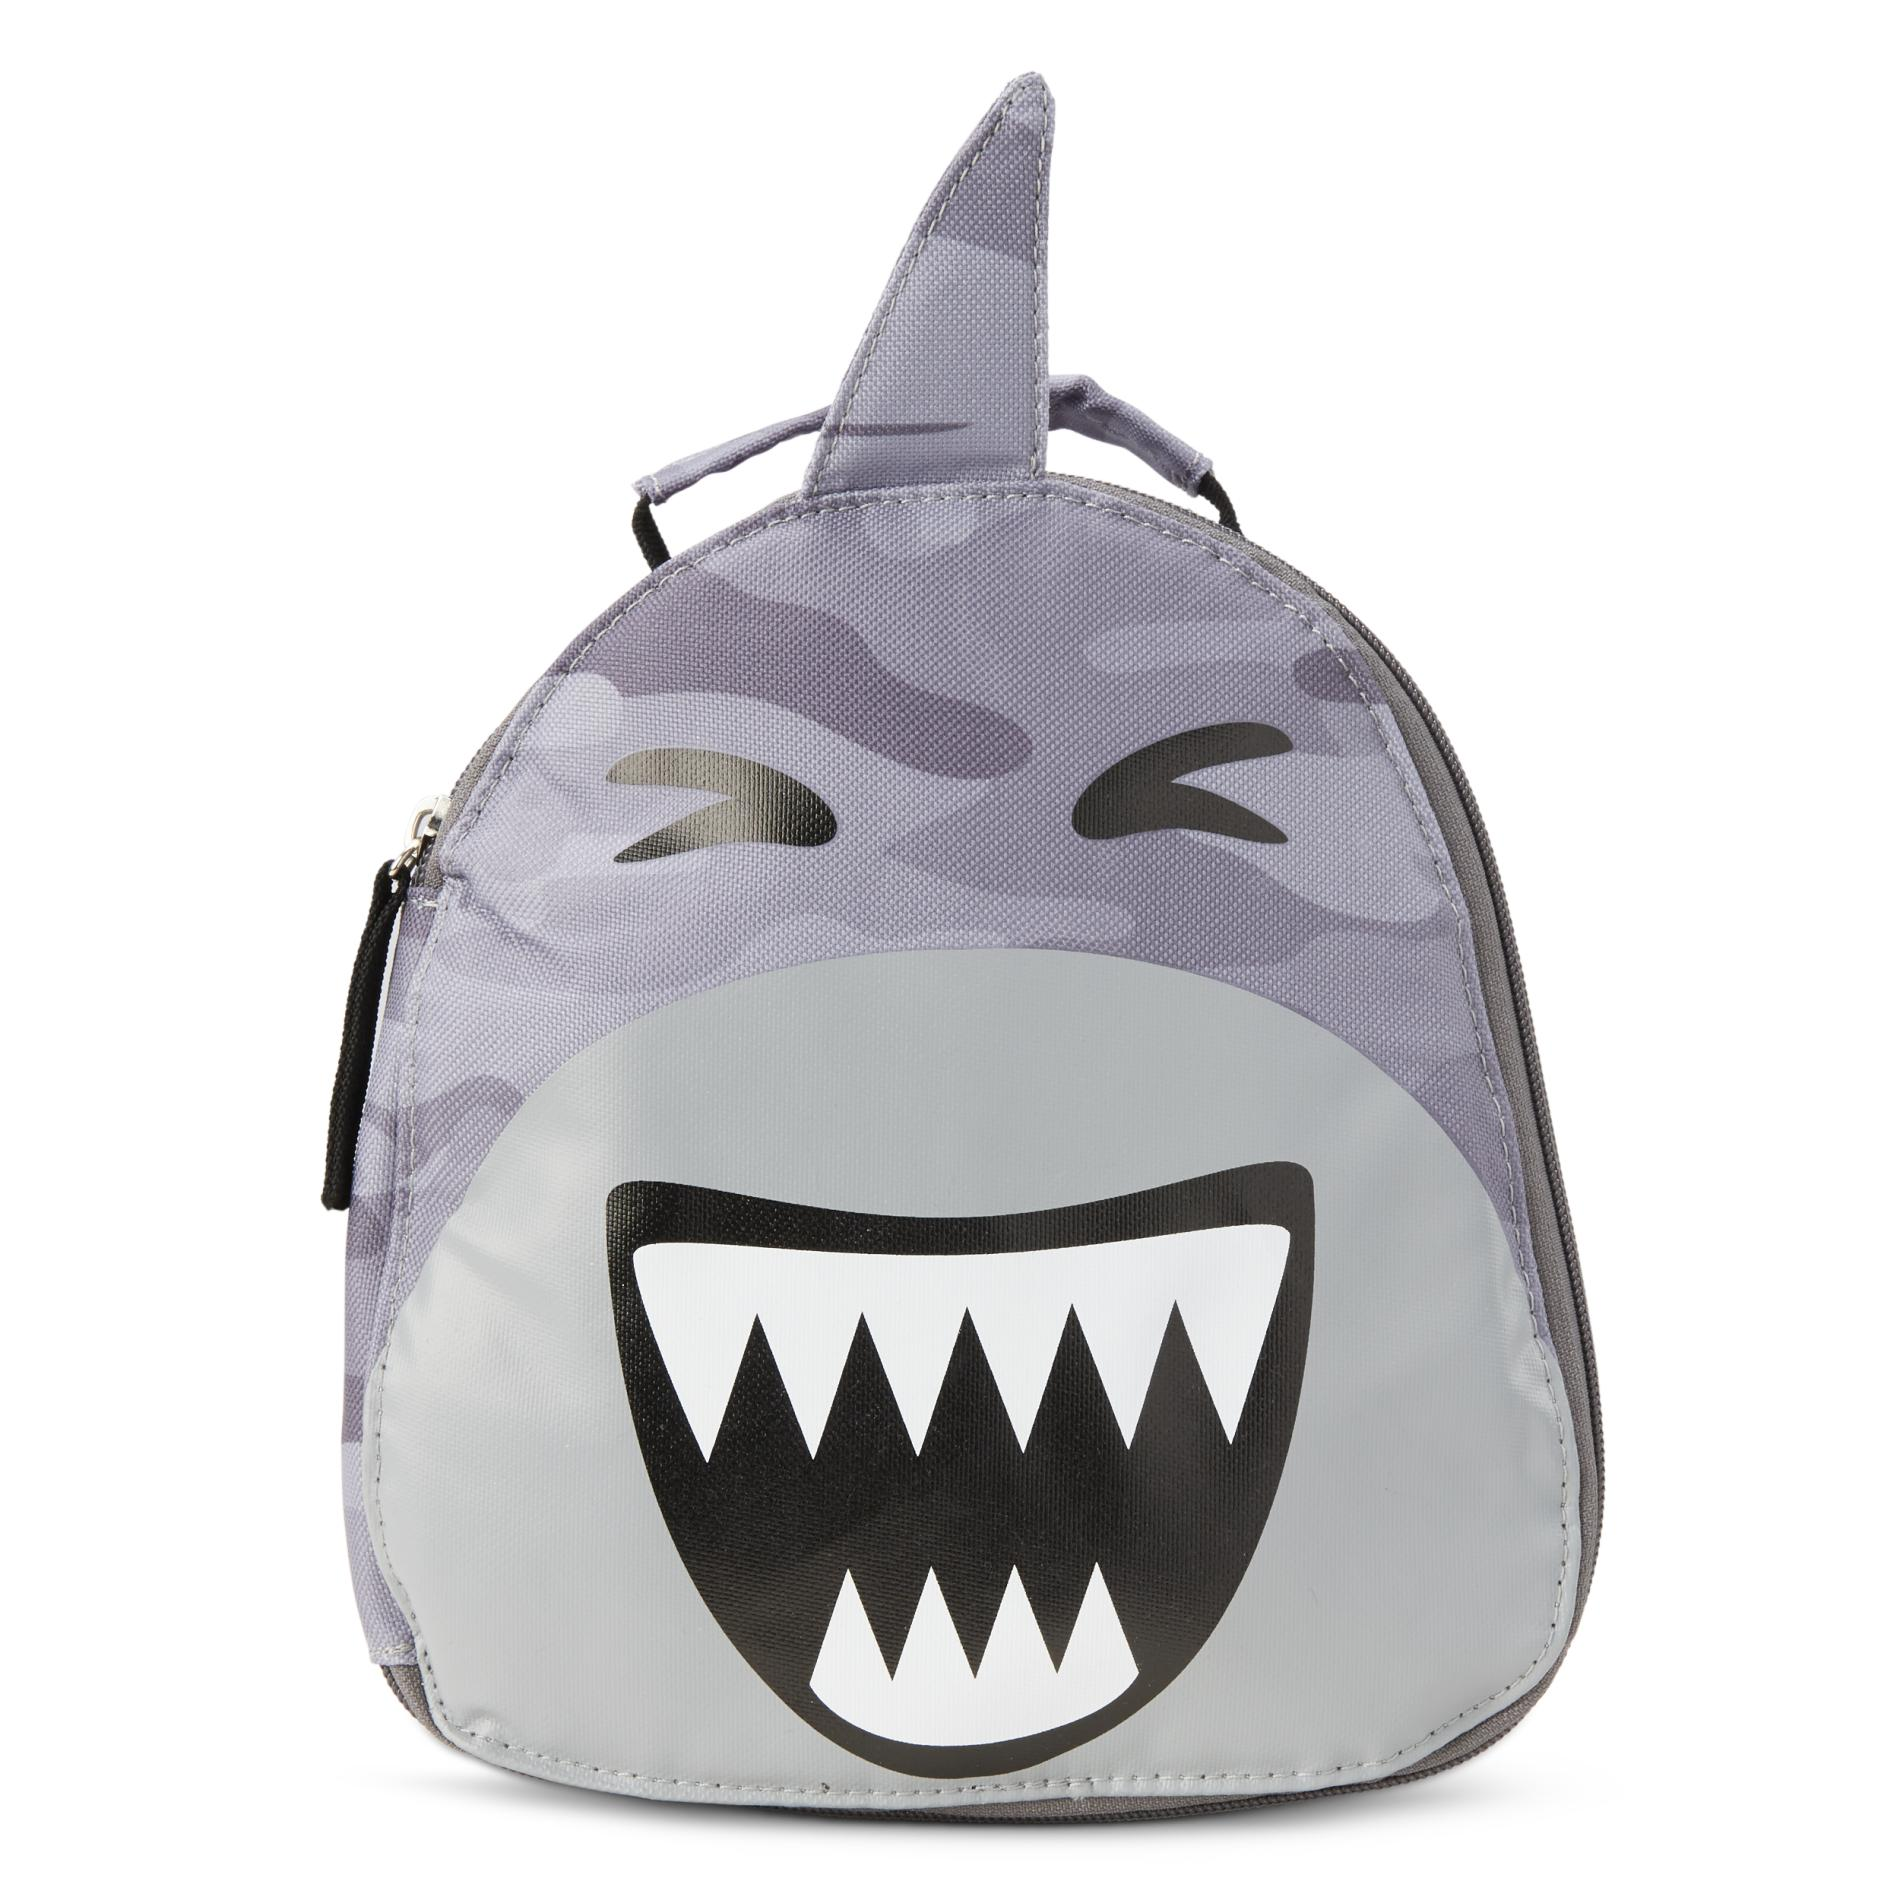 Image of CAM CONSUMER PRODUCTS, INC Boys' Lunch Bag - Shark, PRINT